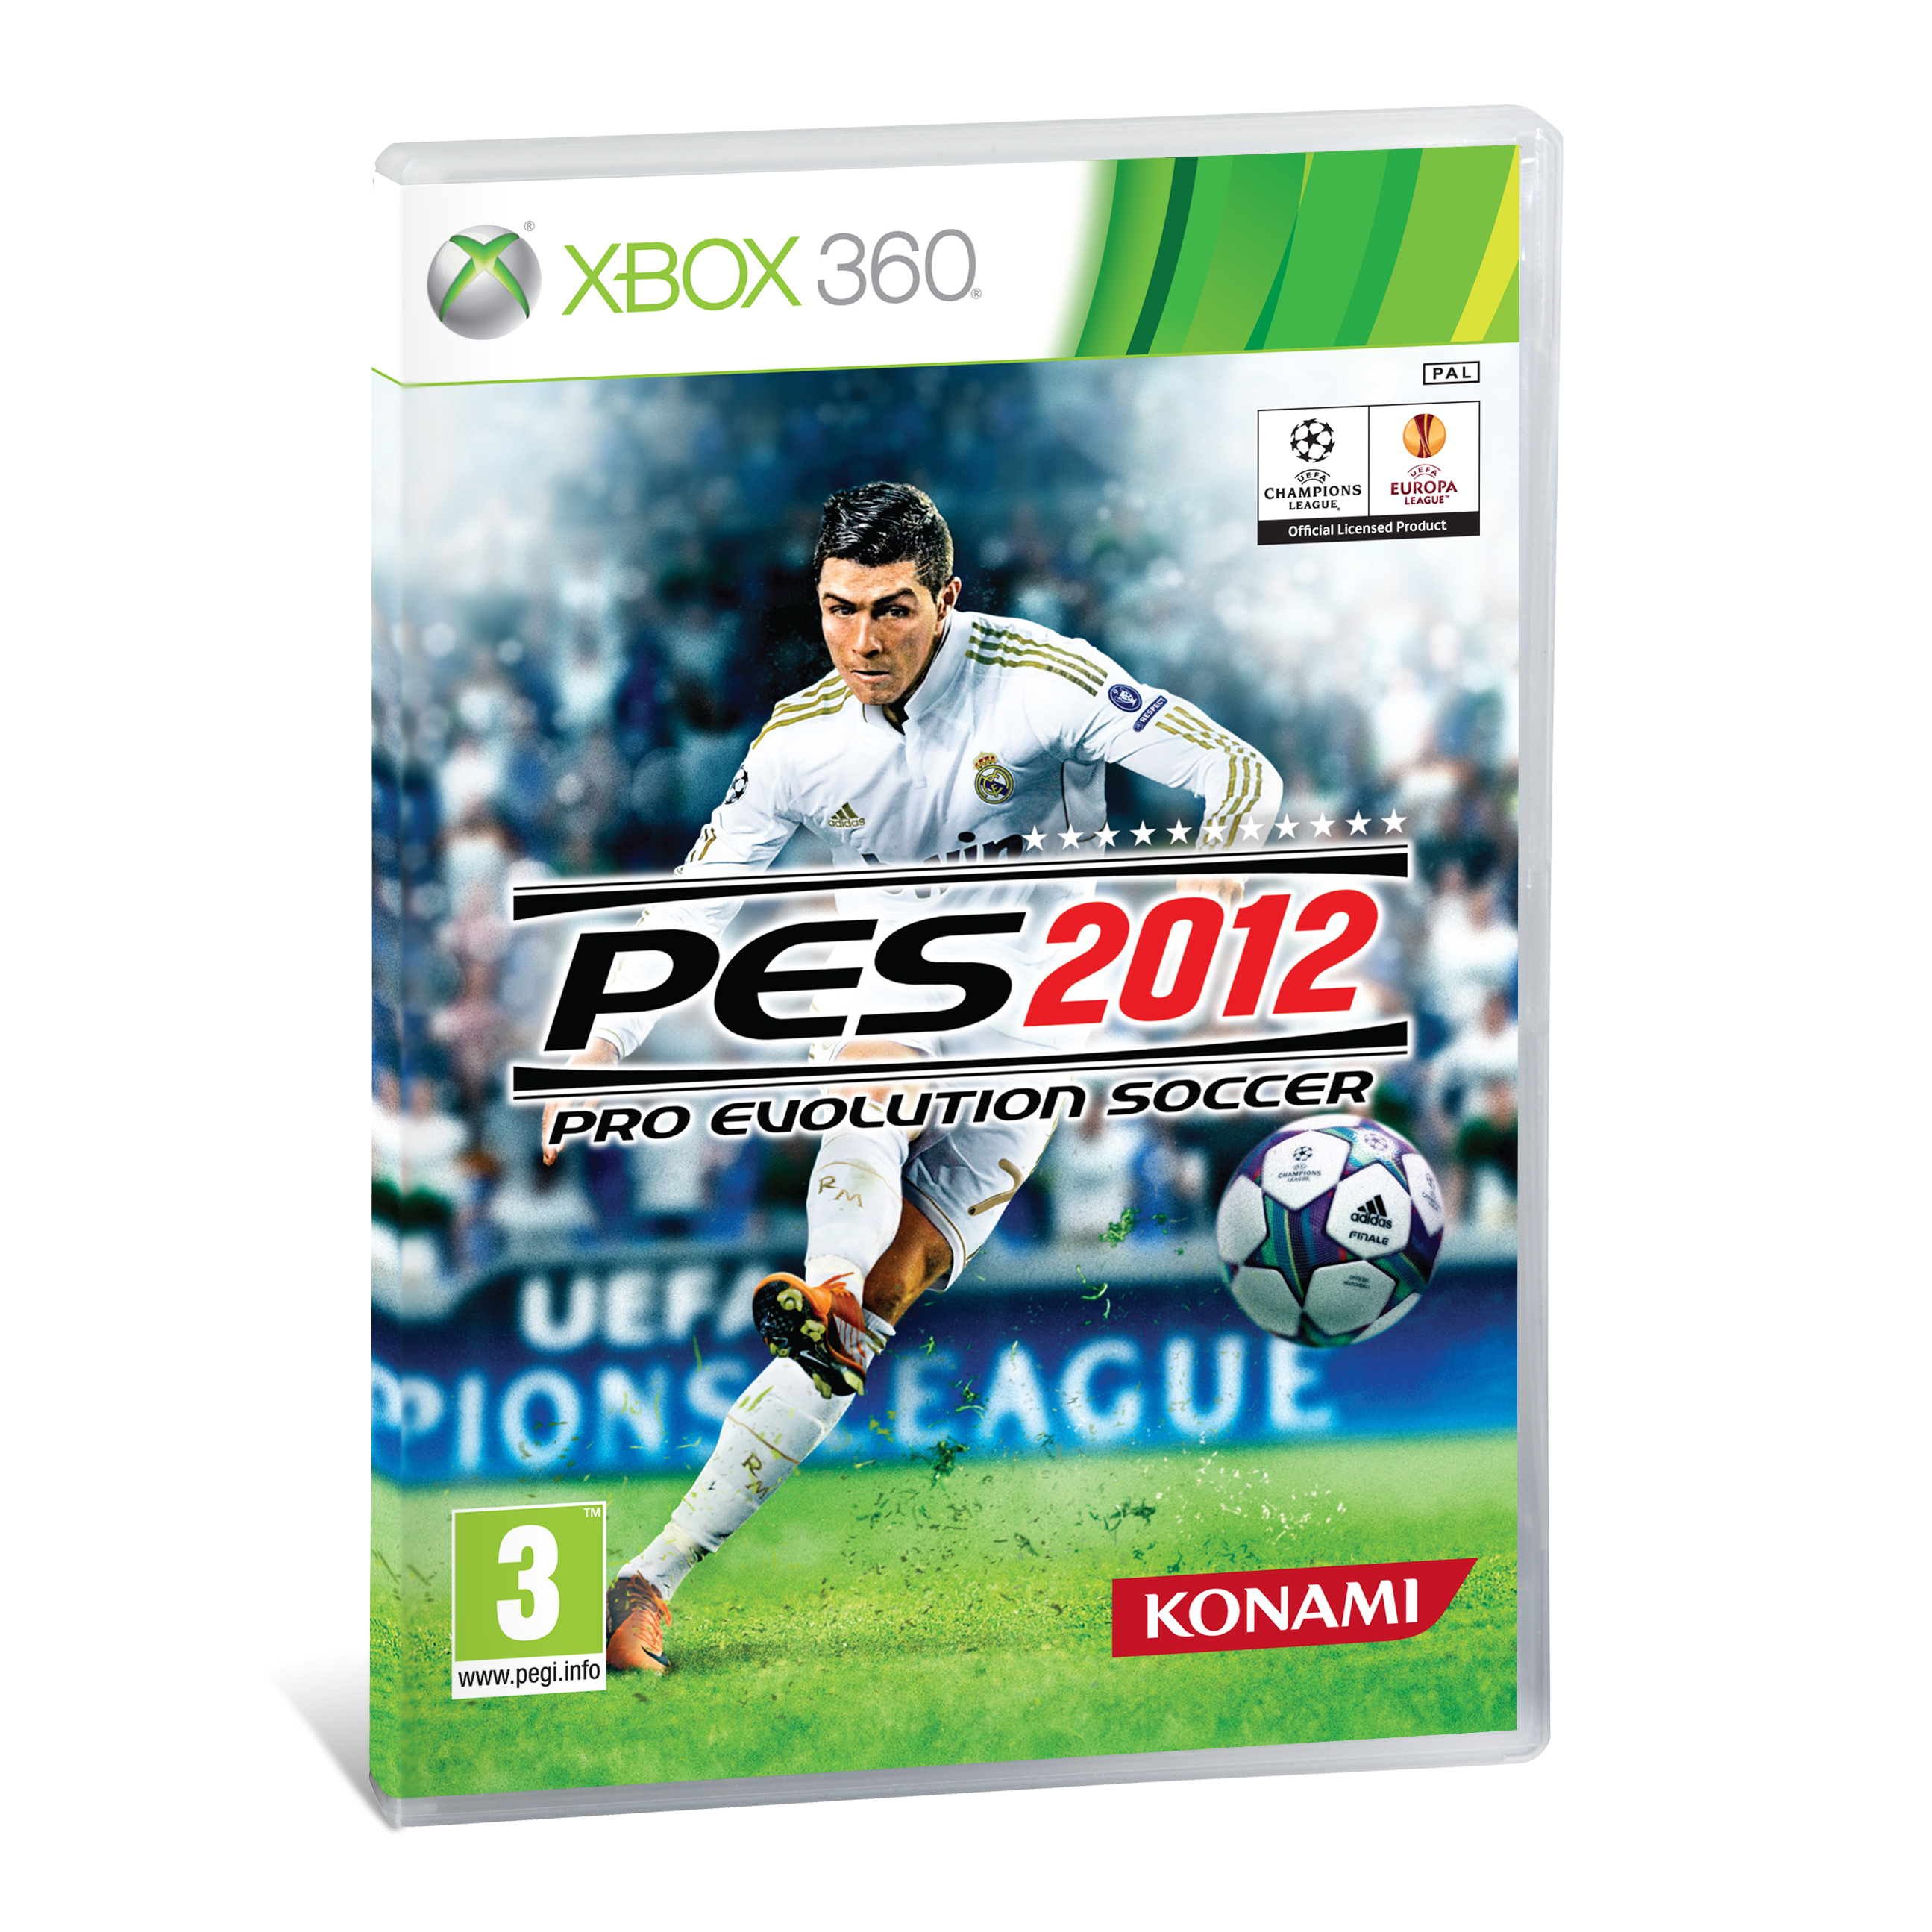 Pro Evolution Soccer 2012 - Xbox 360 (United Kingdom PAL Compatible Only)